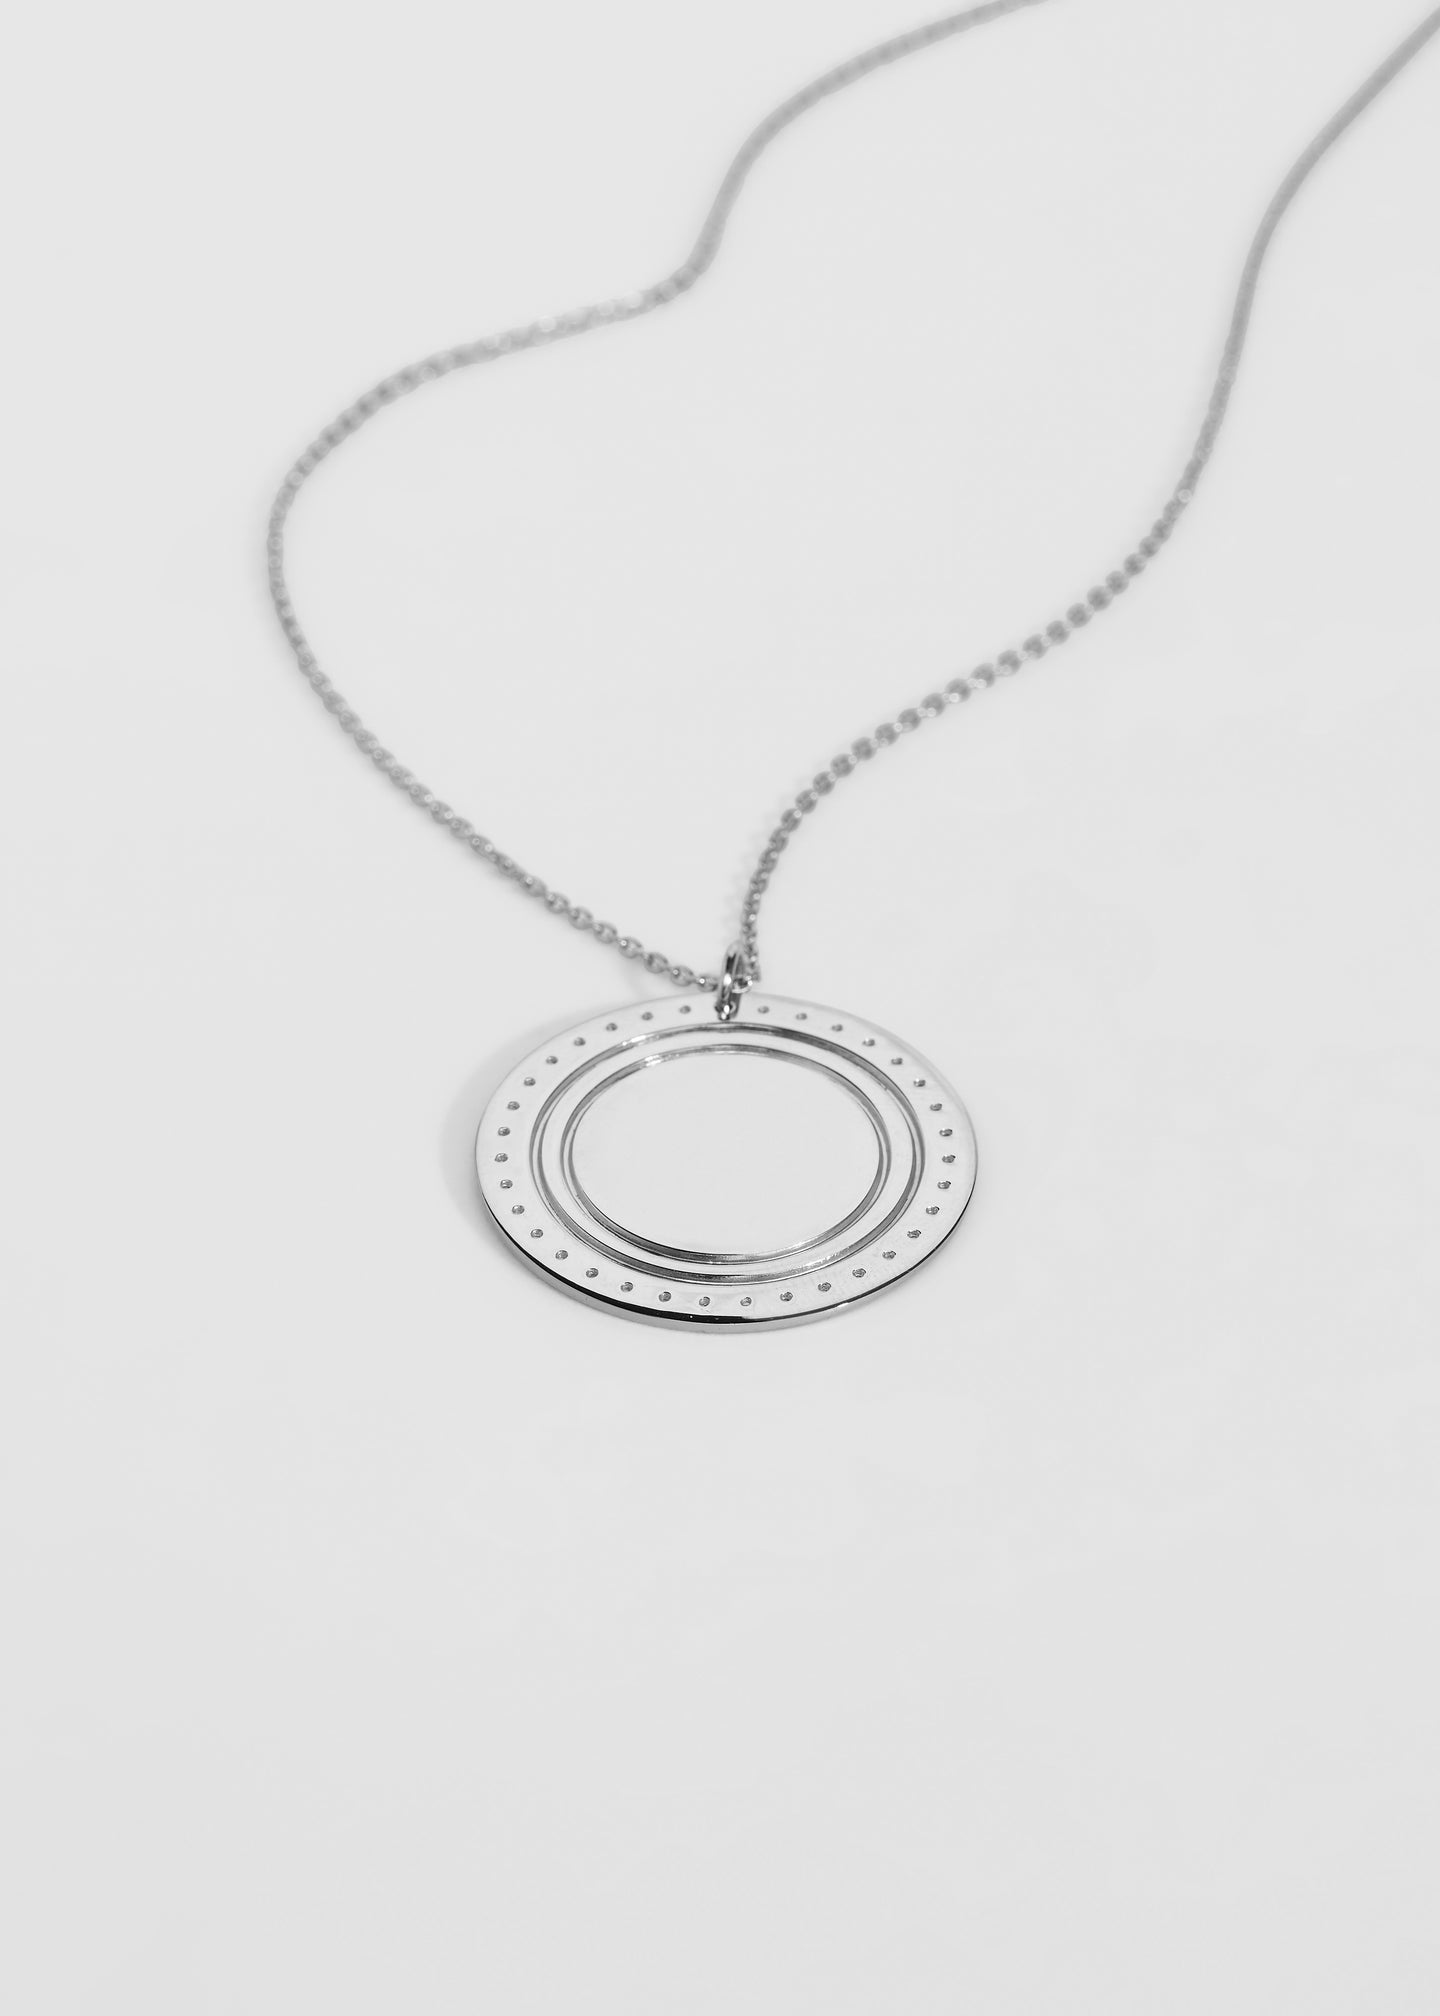 Large Logo Necklace - Trine Tuxen Jewelry